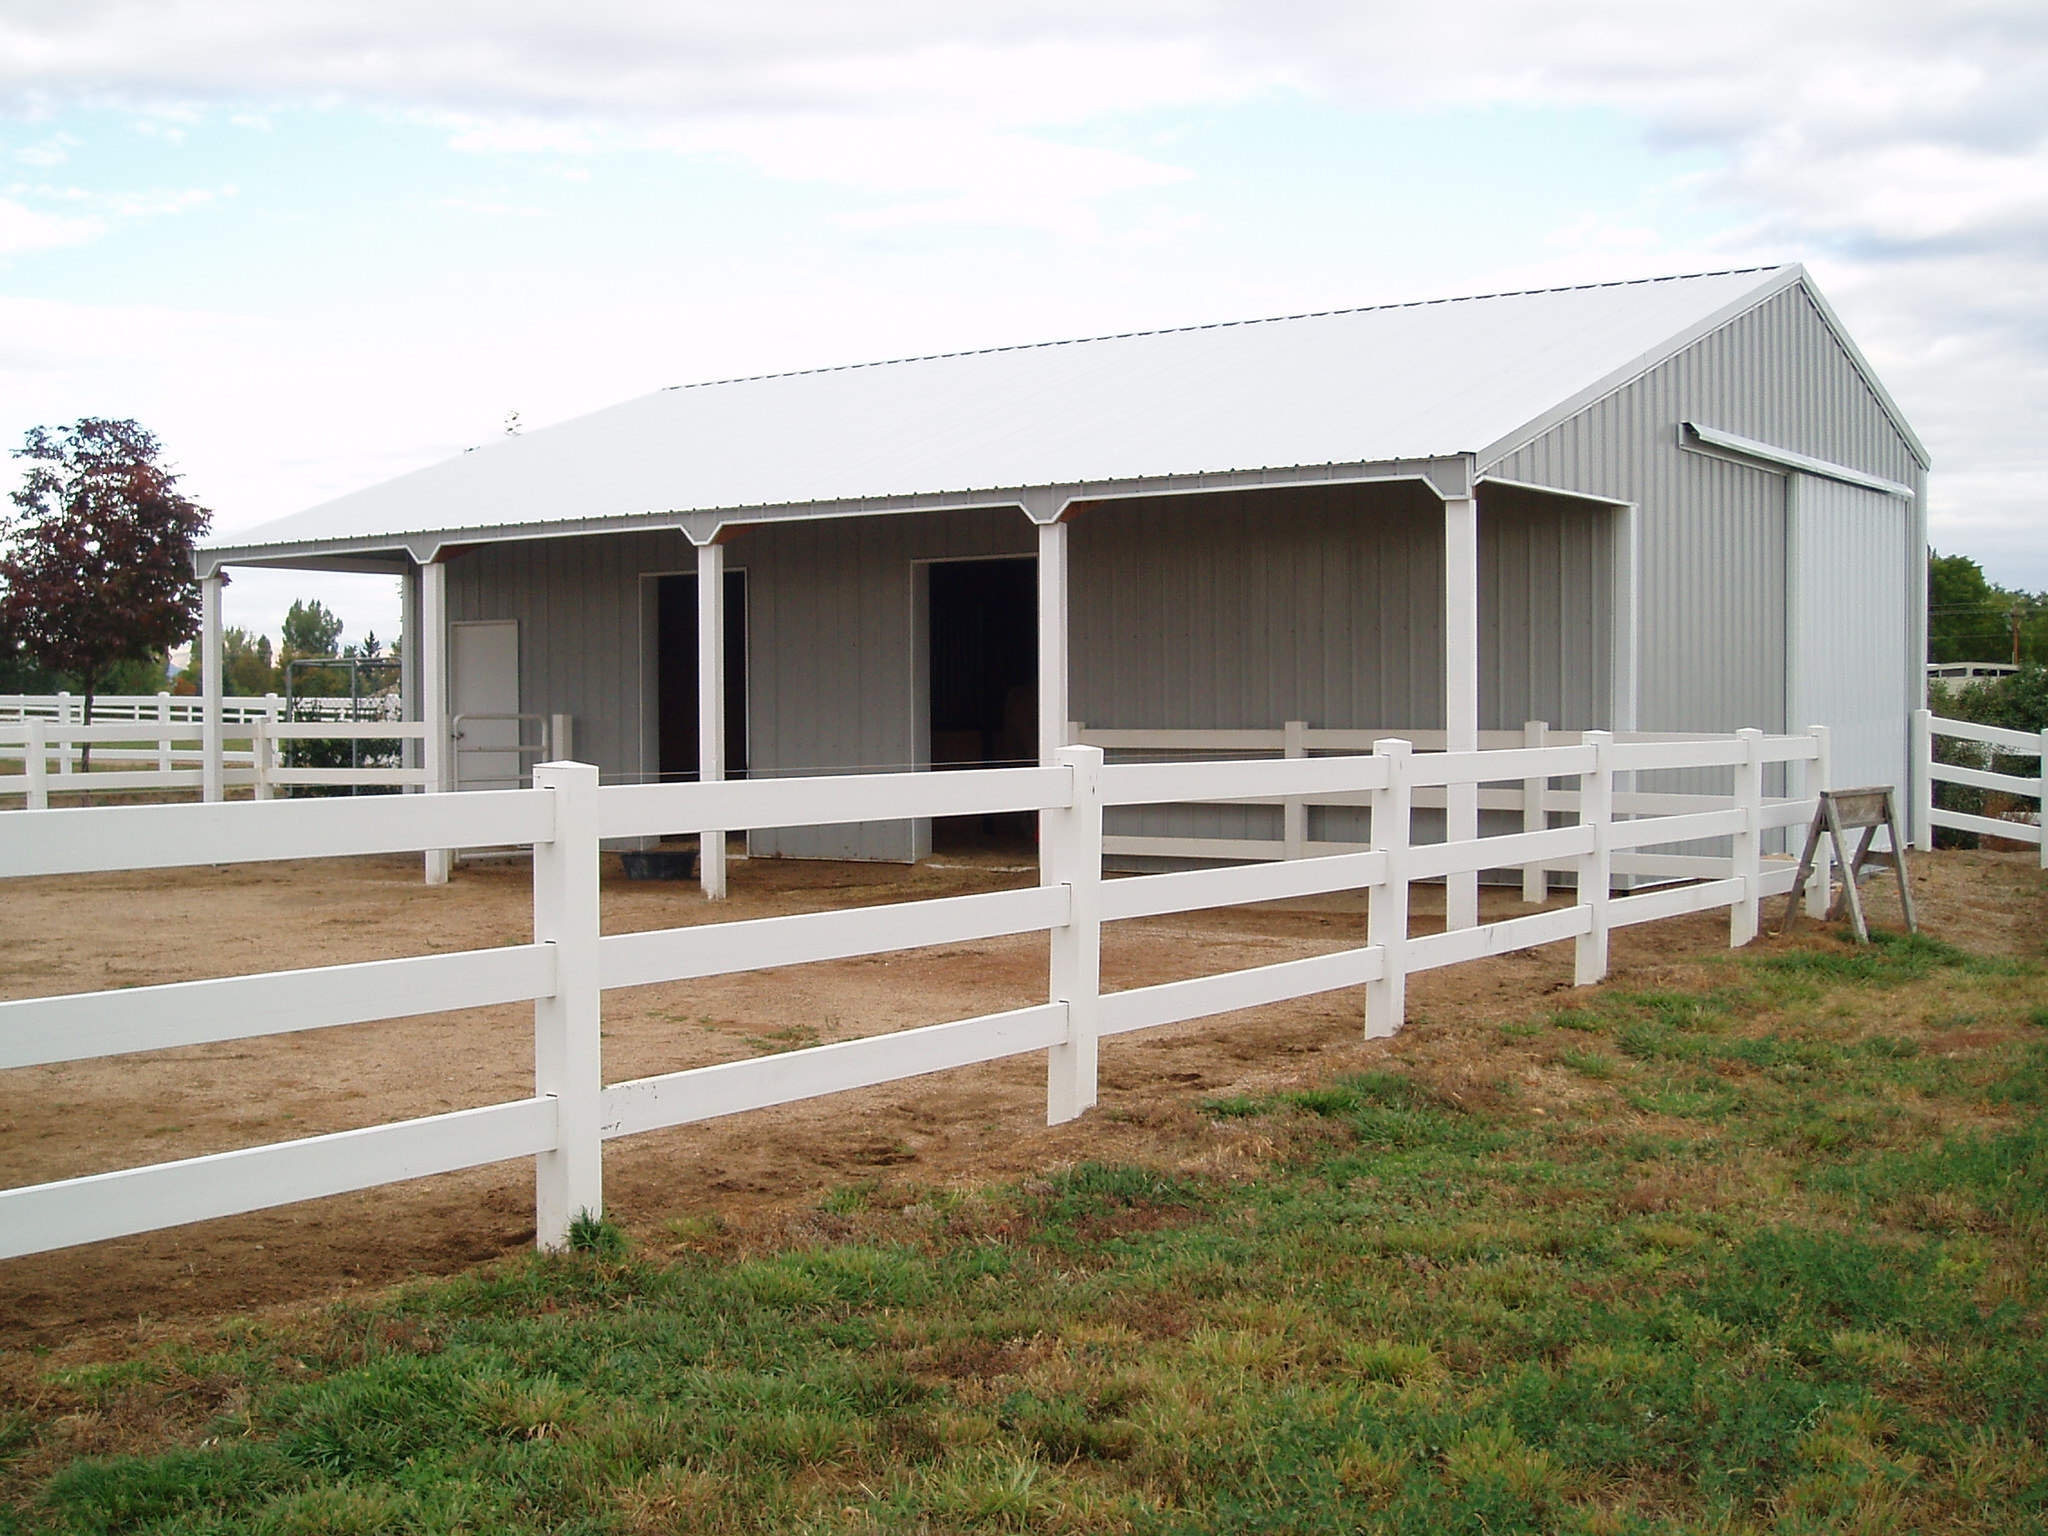 Designs For Horses And Rv Barns Joy Studio Design